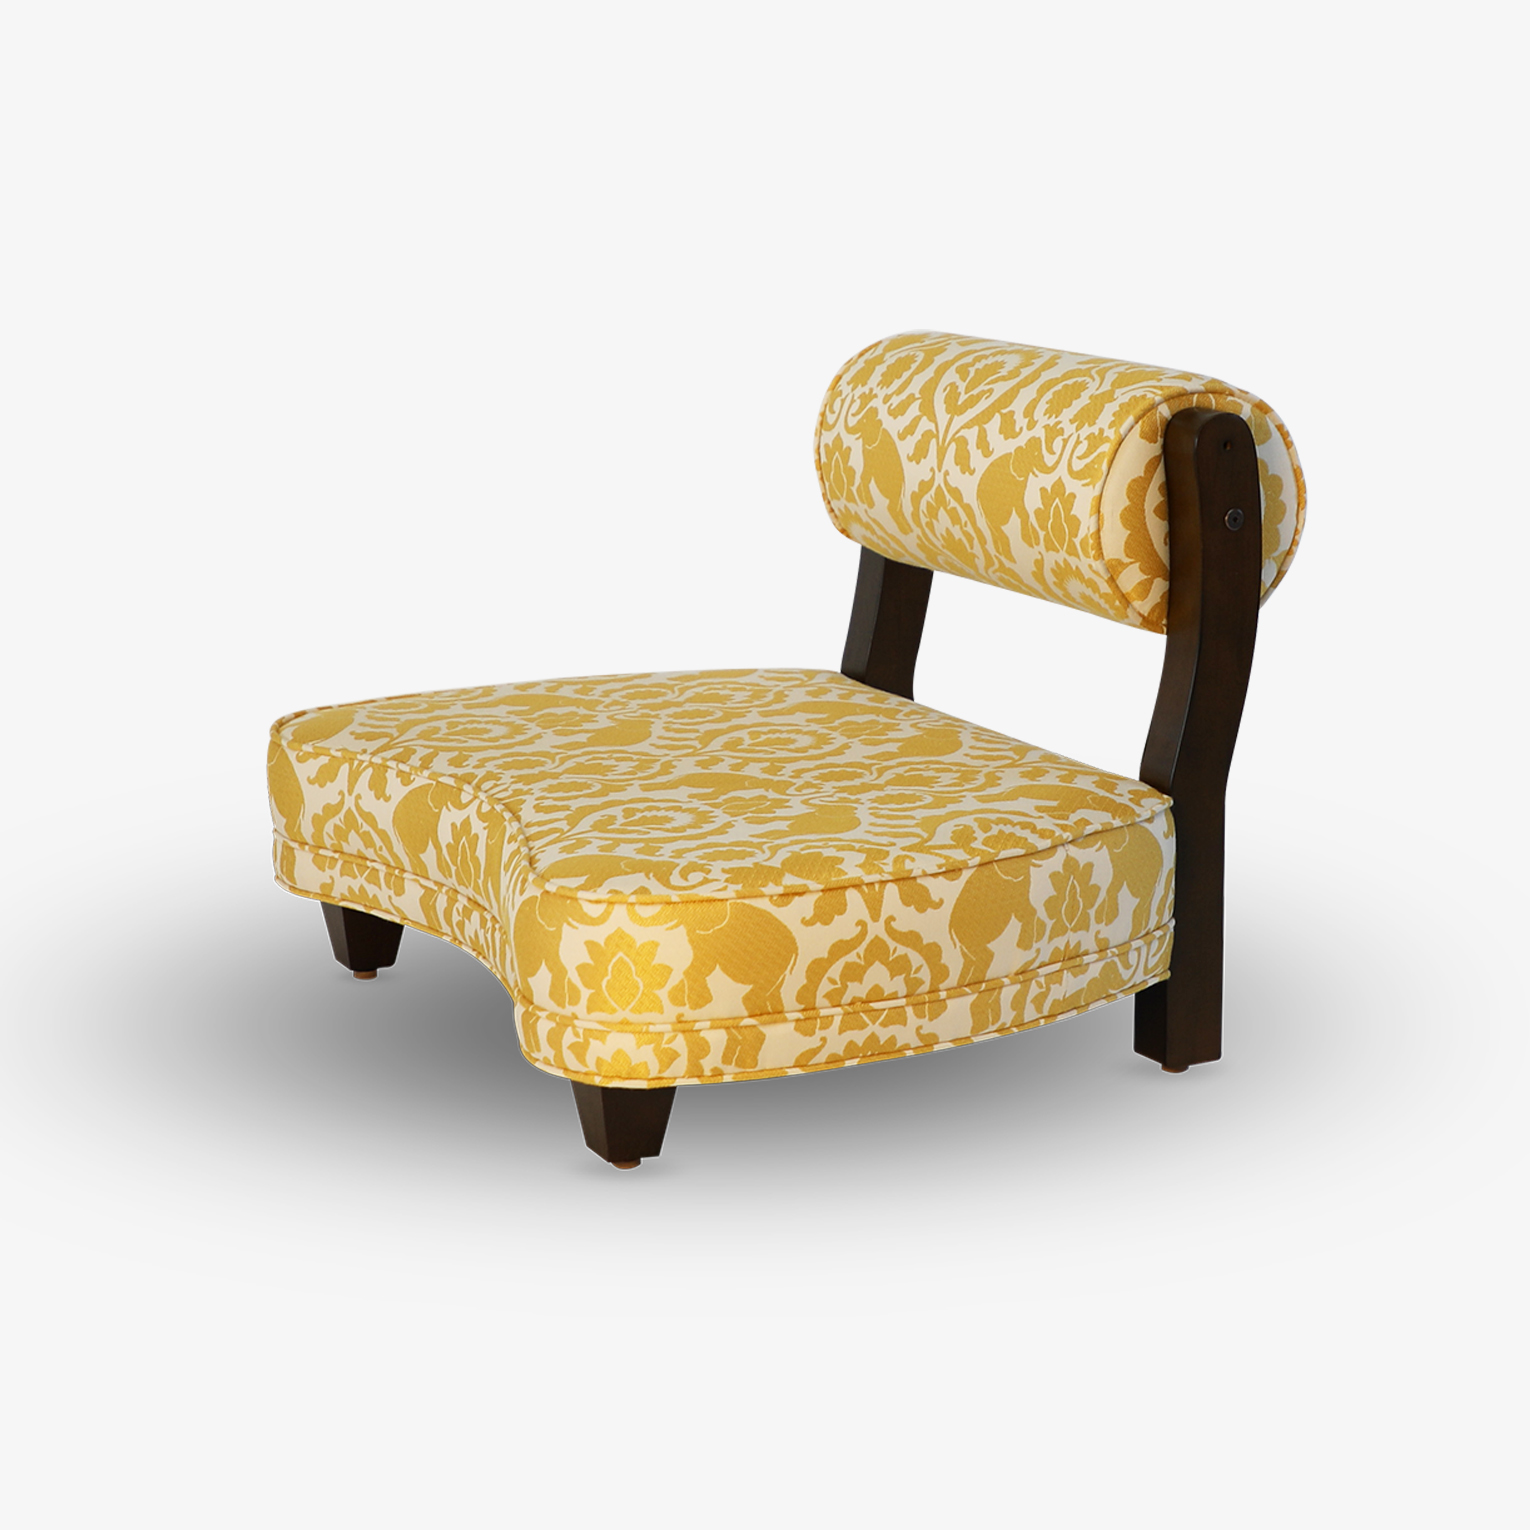 The Rama Meditation Chair in Sunshower Happy Elephants Fabric.